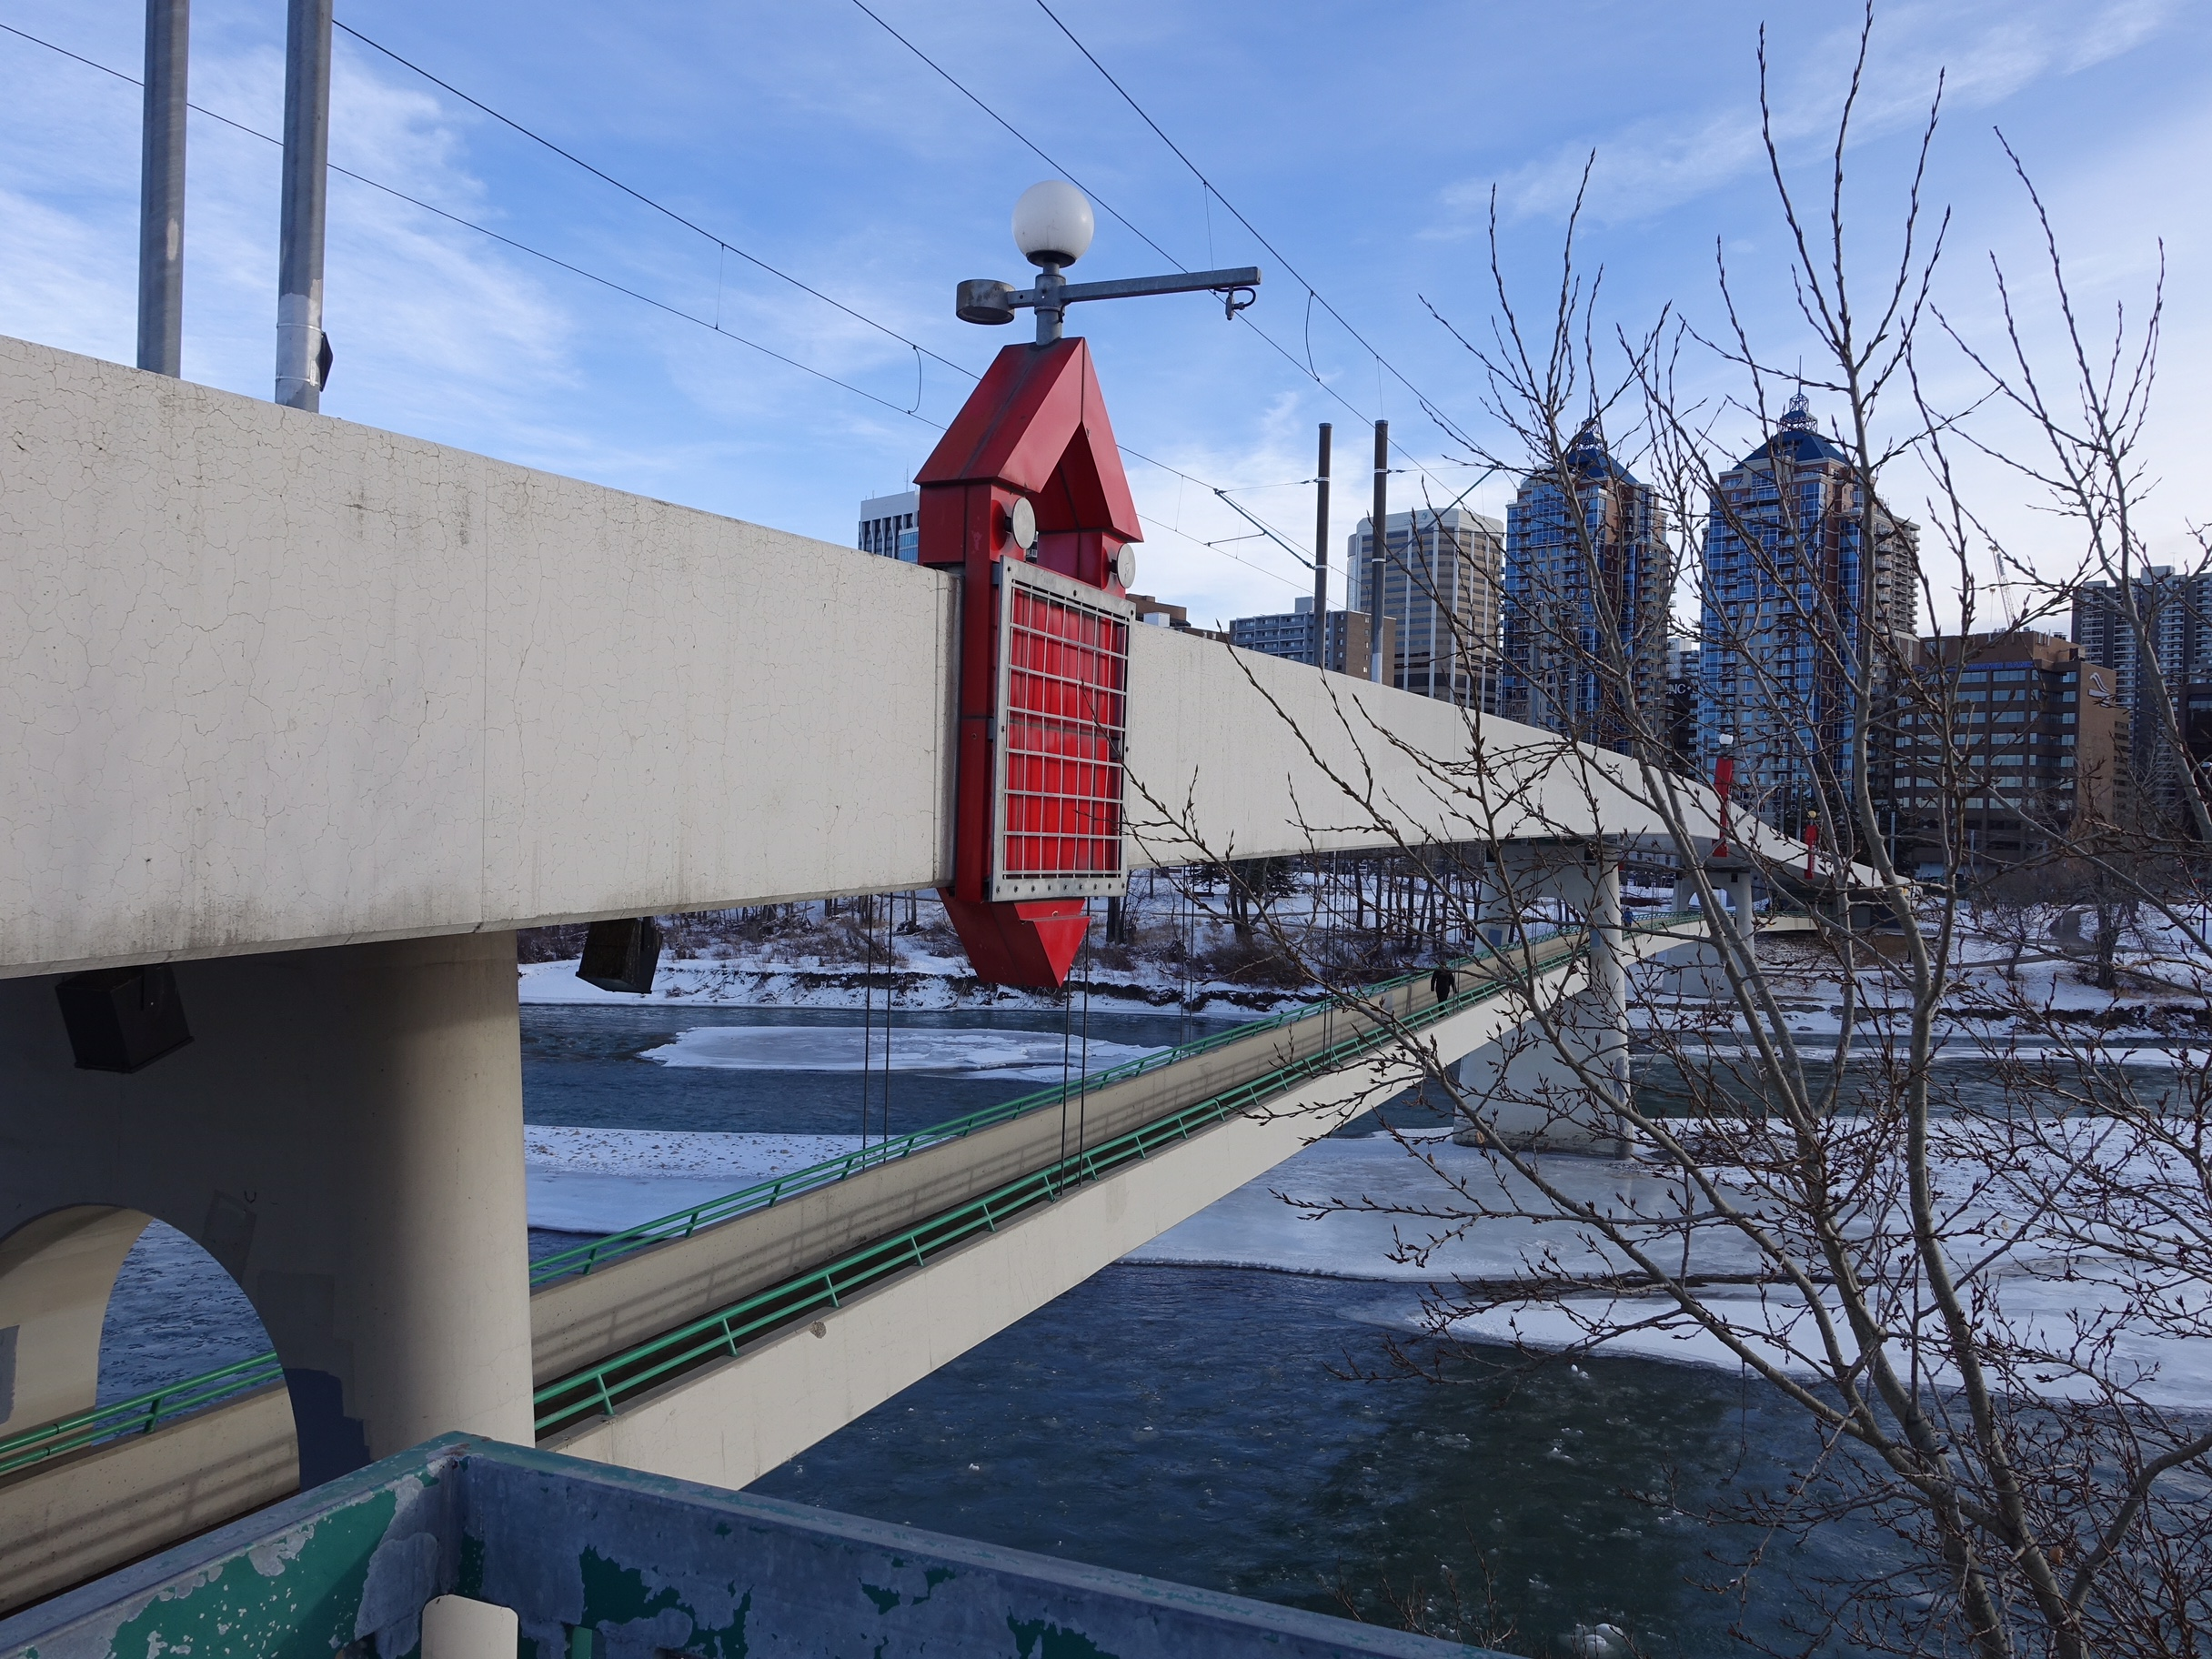 Sunnyside/Eau Claire double decker bridge, LRT above / pedestrians below